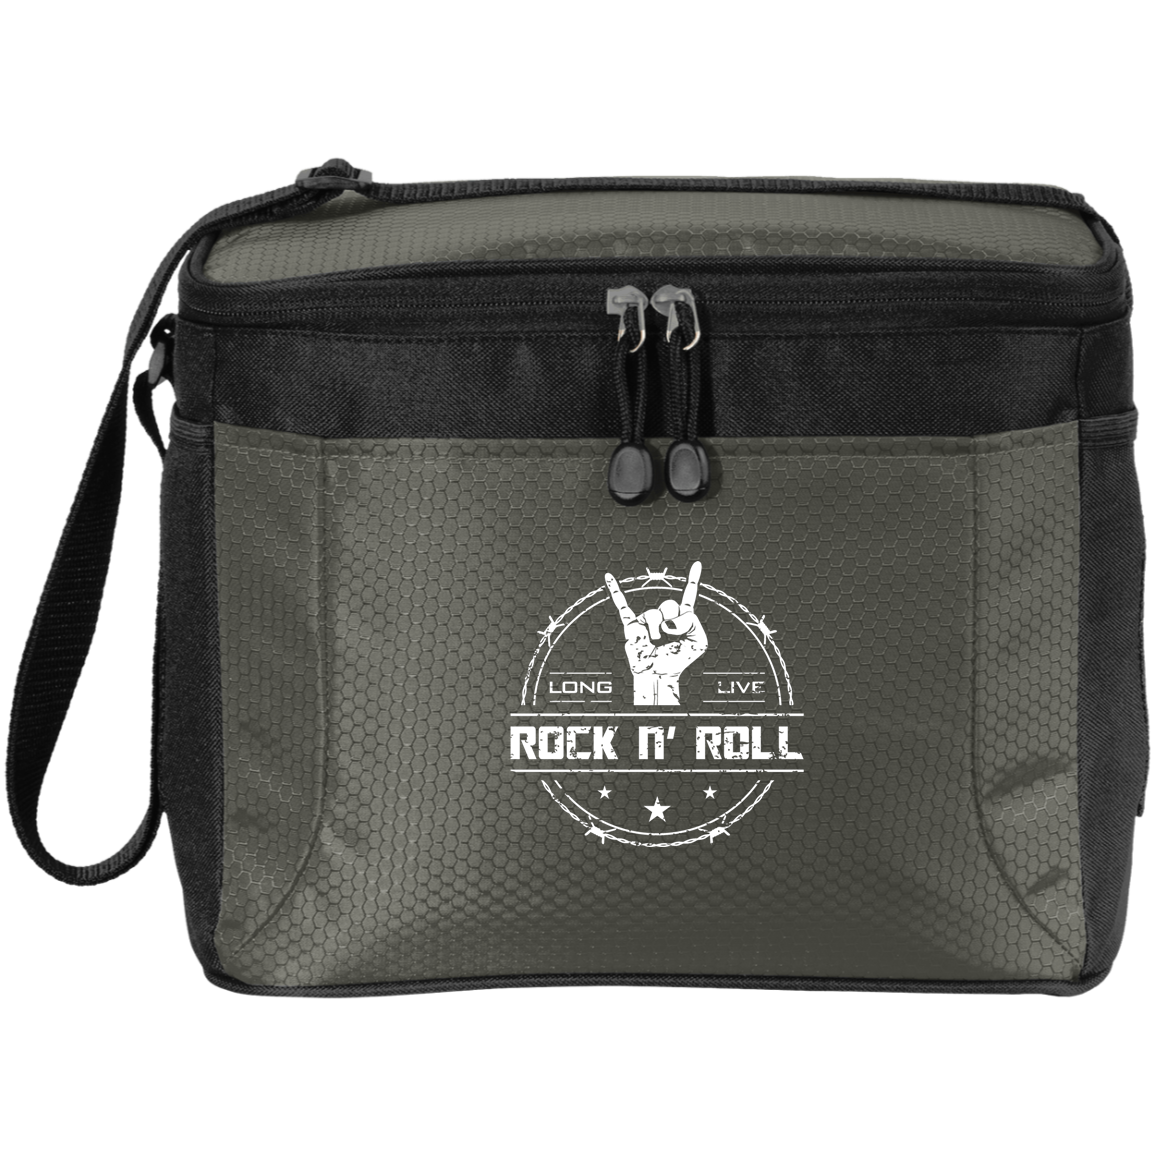 Midnight Long Live Rock And Roll 12-Pack Cooler